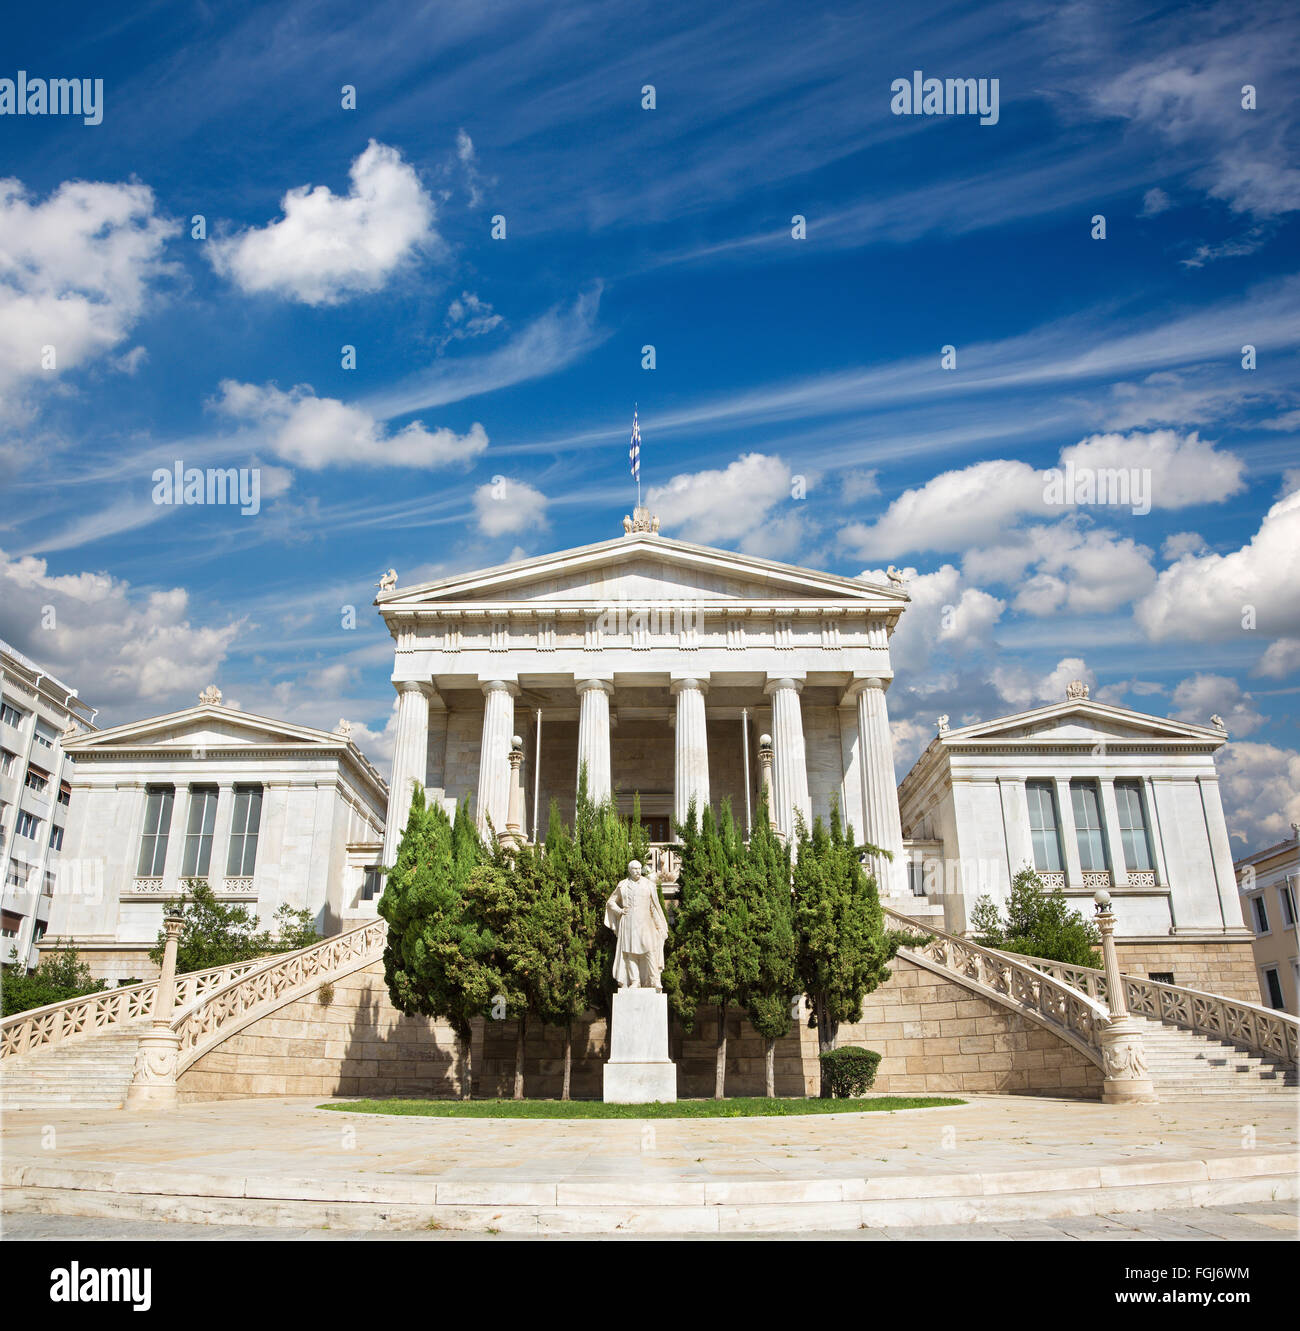 Athens - The National Library designed by the Danish architect Theophil Freiherr von Hansen (19. cent.) - Stock Image